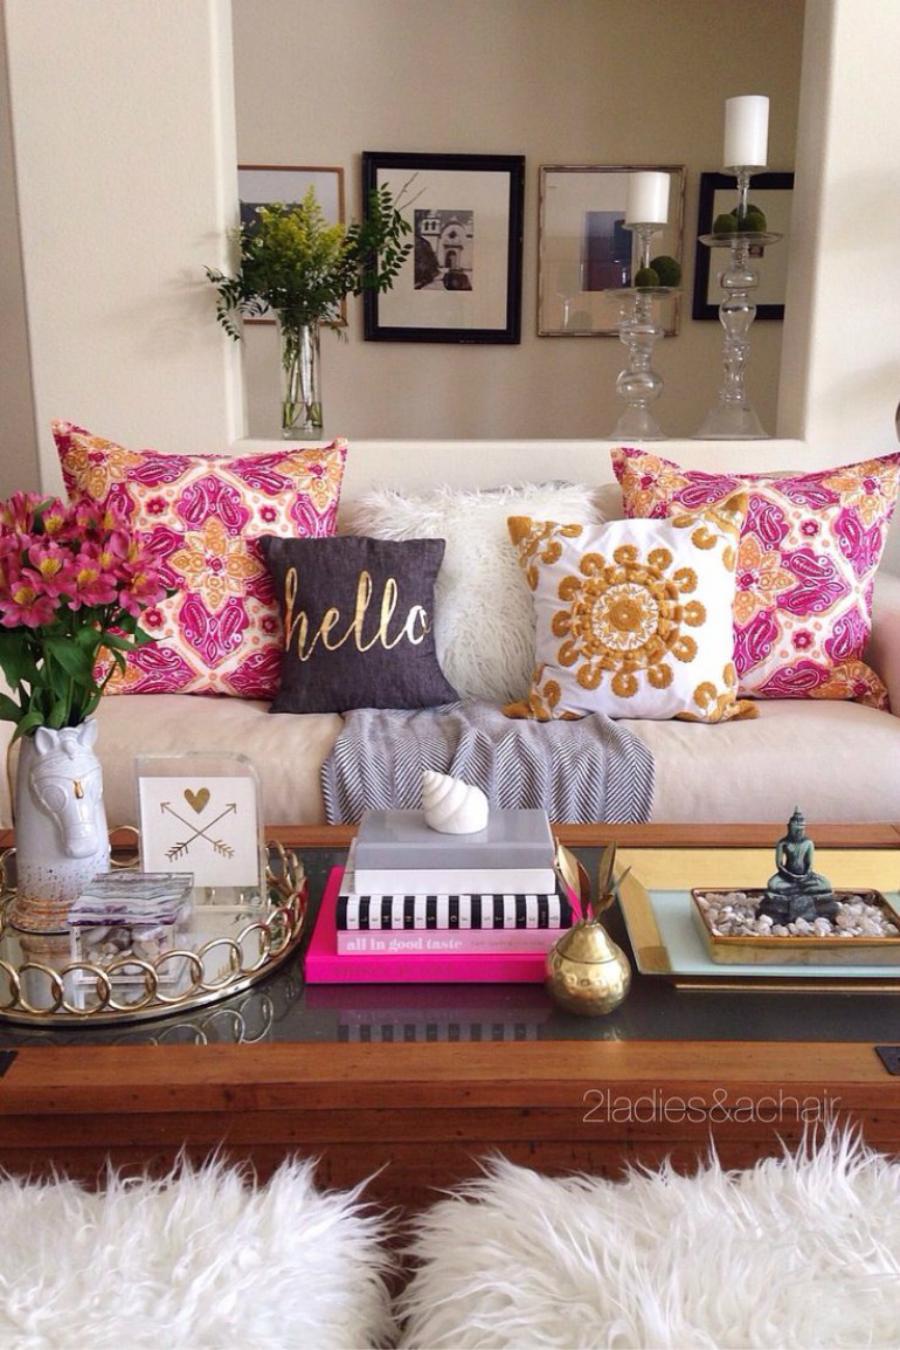 Upholstery Fabrics Inspiration: How to Style with Decorative Pillows upholstery fabrics inspiration Upholstery Fabrics Inspiration: How to Style with Decorative Pillows Upholstery Fabrics Inspiration How to Style with Decorative Pillows3